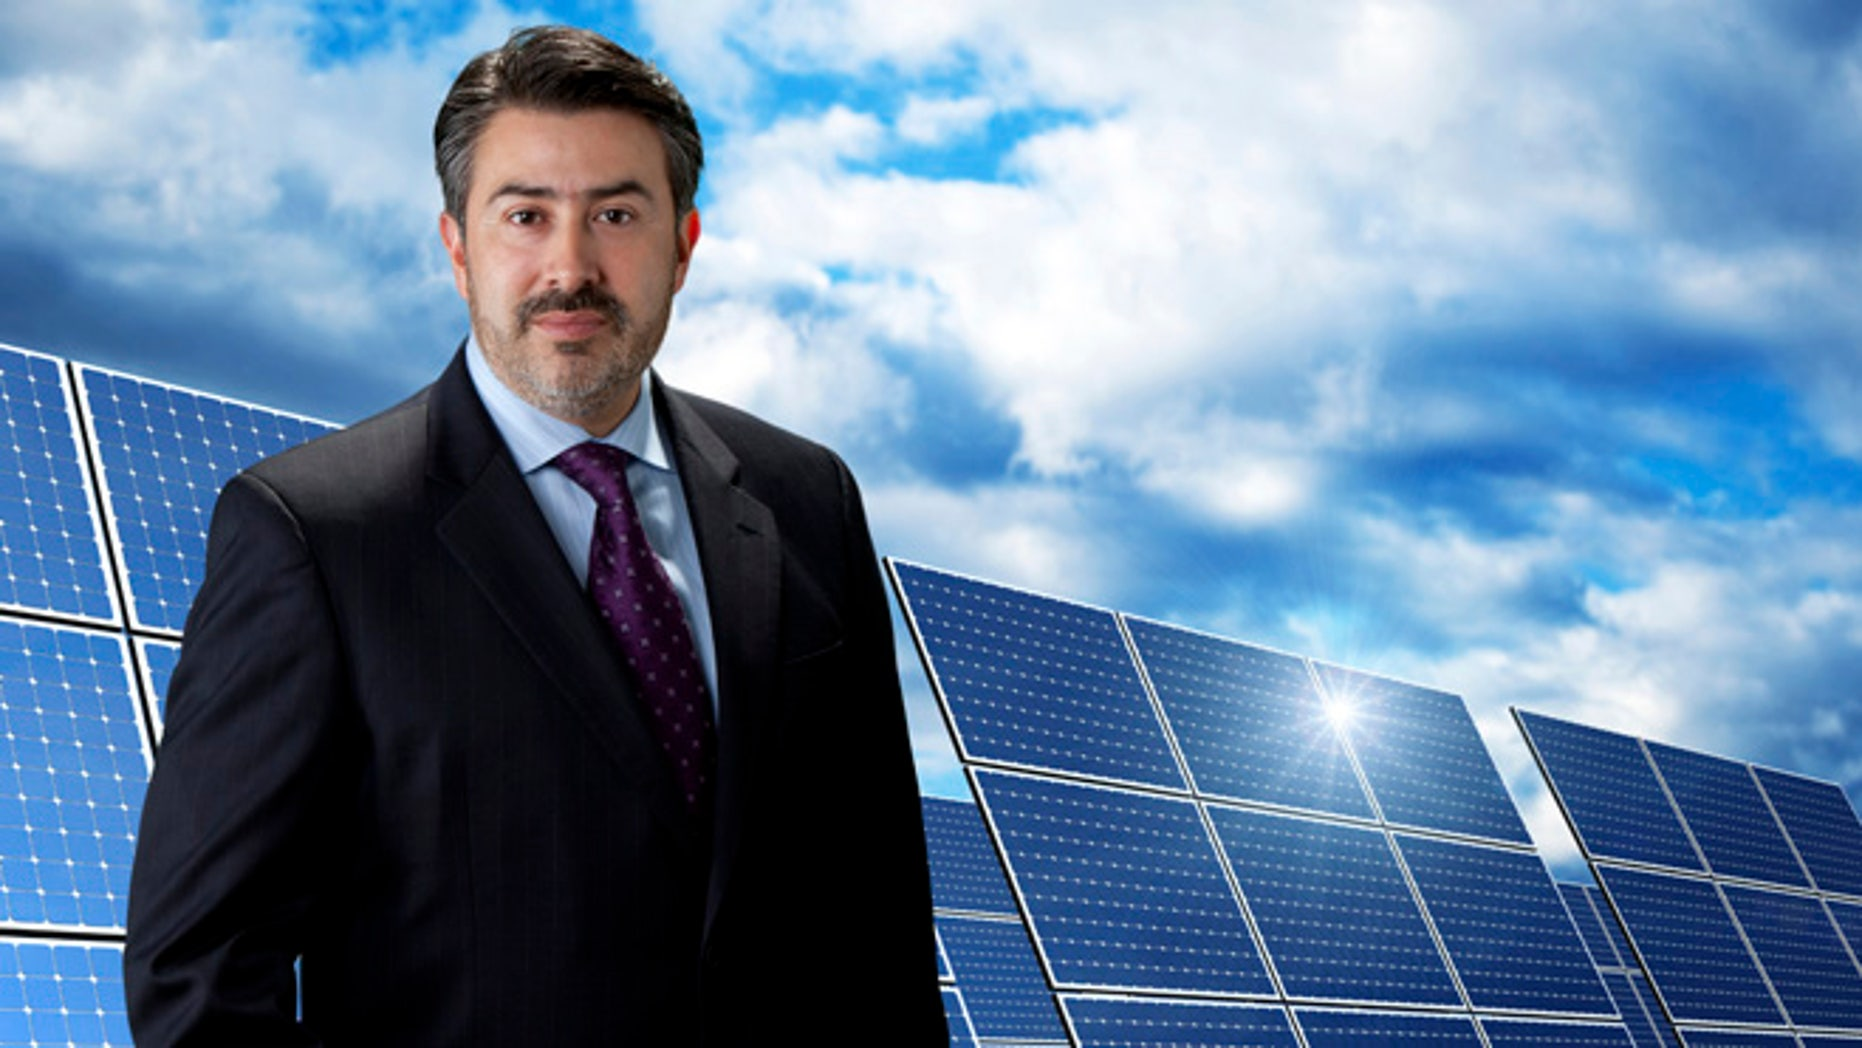 Luis Rojas grew up in a small house in East Los Angeles on Evergreen Avenue. Today he is President and CEO of a solar development company bearing that street's name: Evergreen Energy Solutions, LLC.